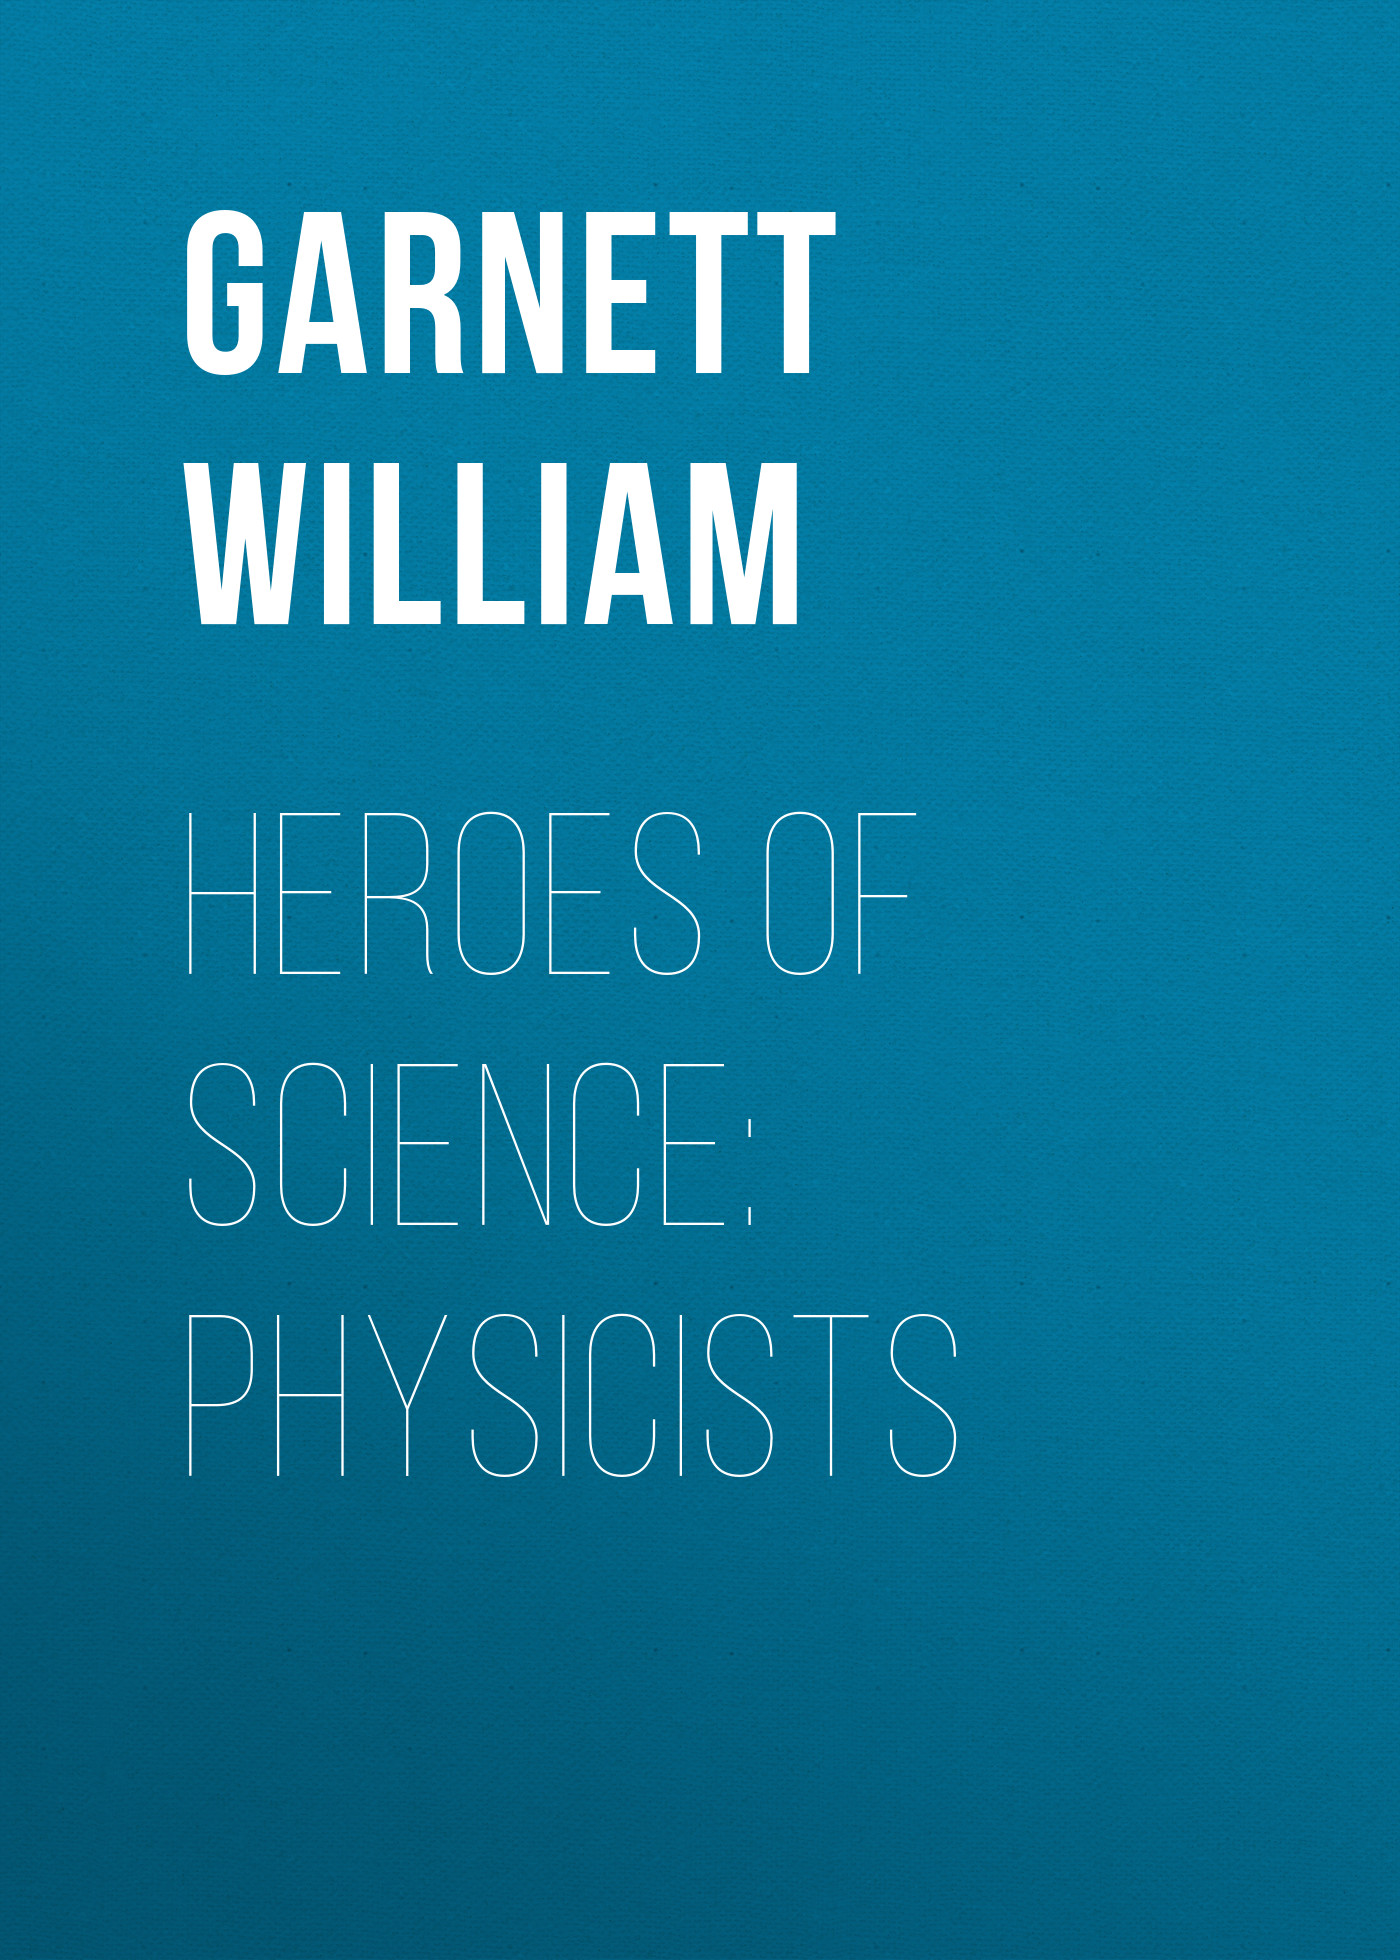 Garnett William Heroes of Science: Physicists все цены